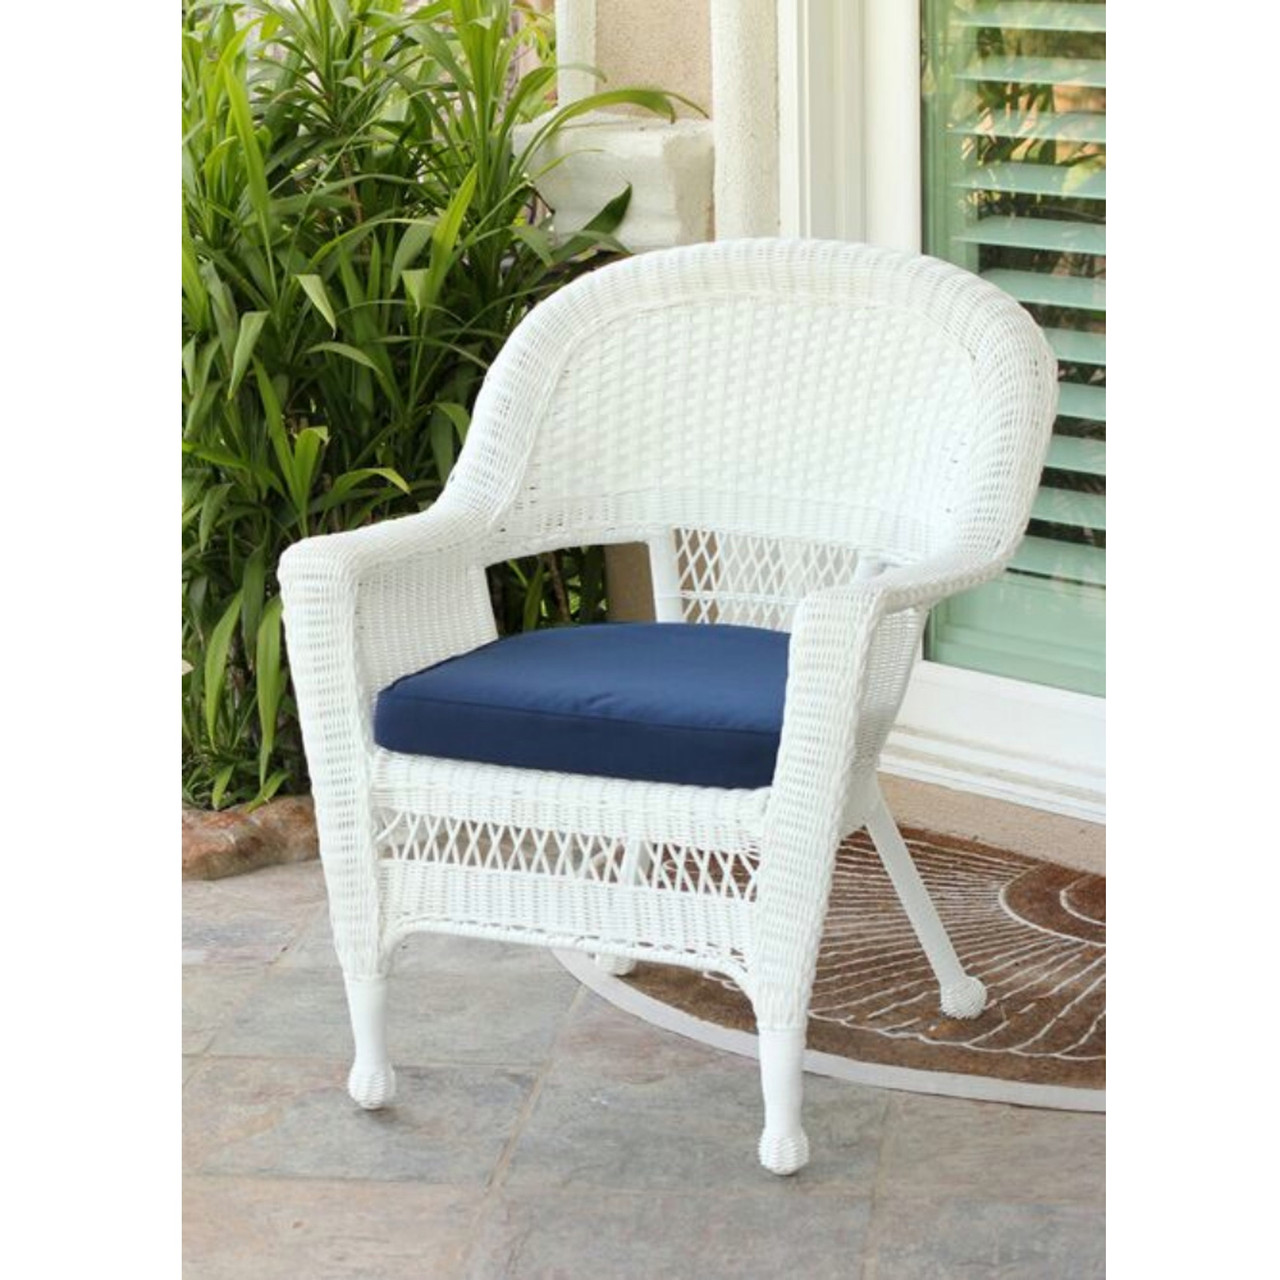 white resin wicker chairs baby bean bag chair argos 36 outdoor patio garden with blue cushion cc living